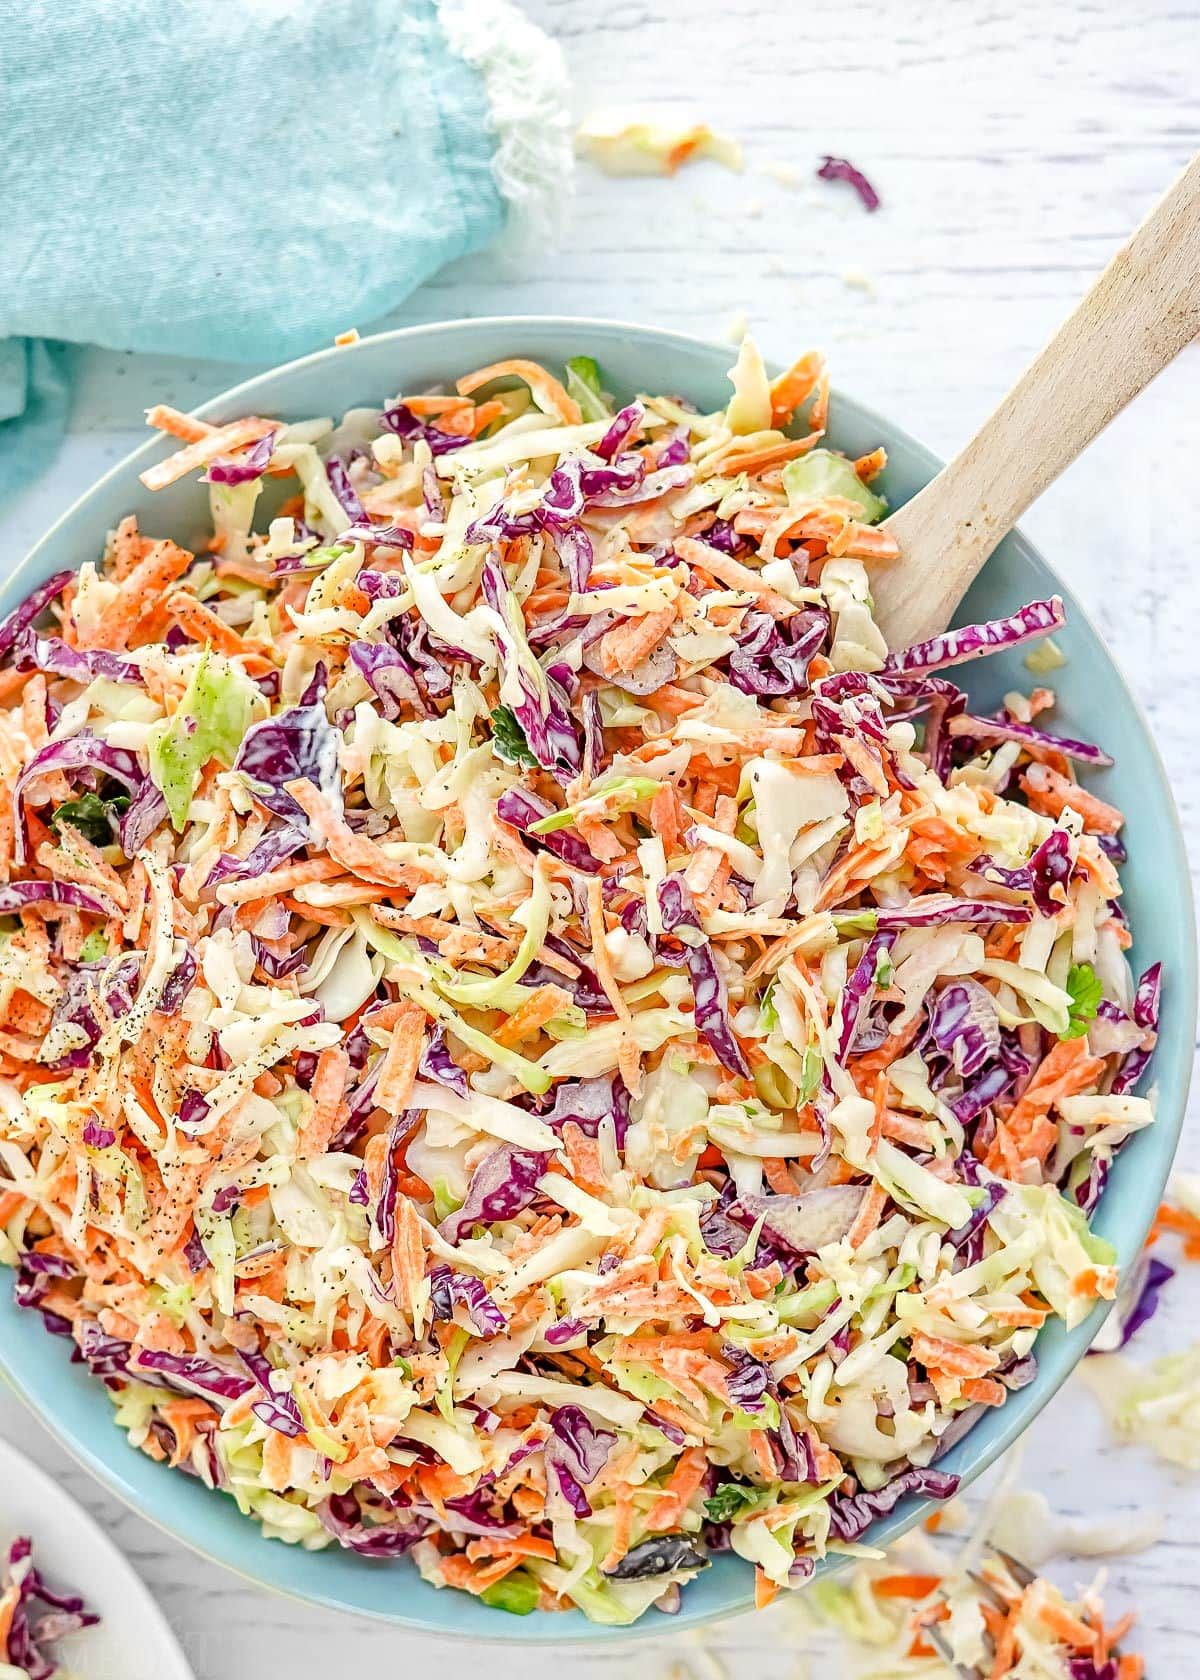 close up look at tri colored coleslaw in light blue bowl ready to be served.